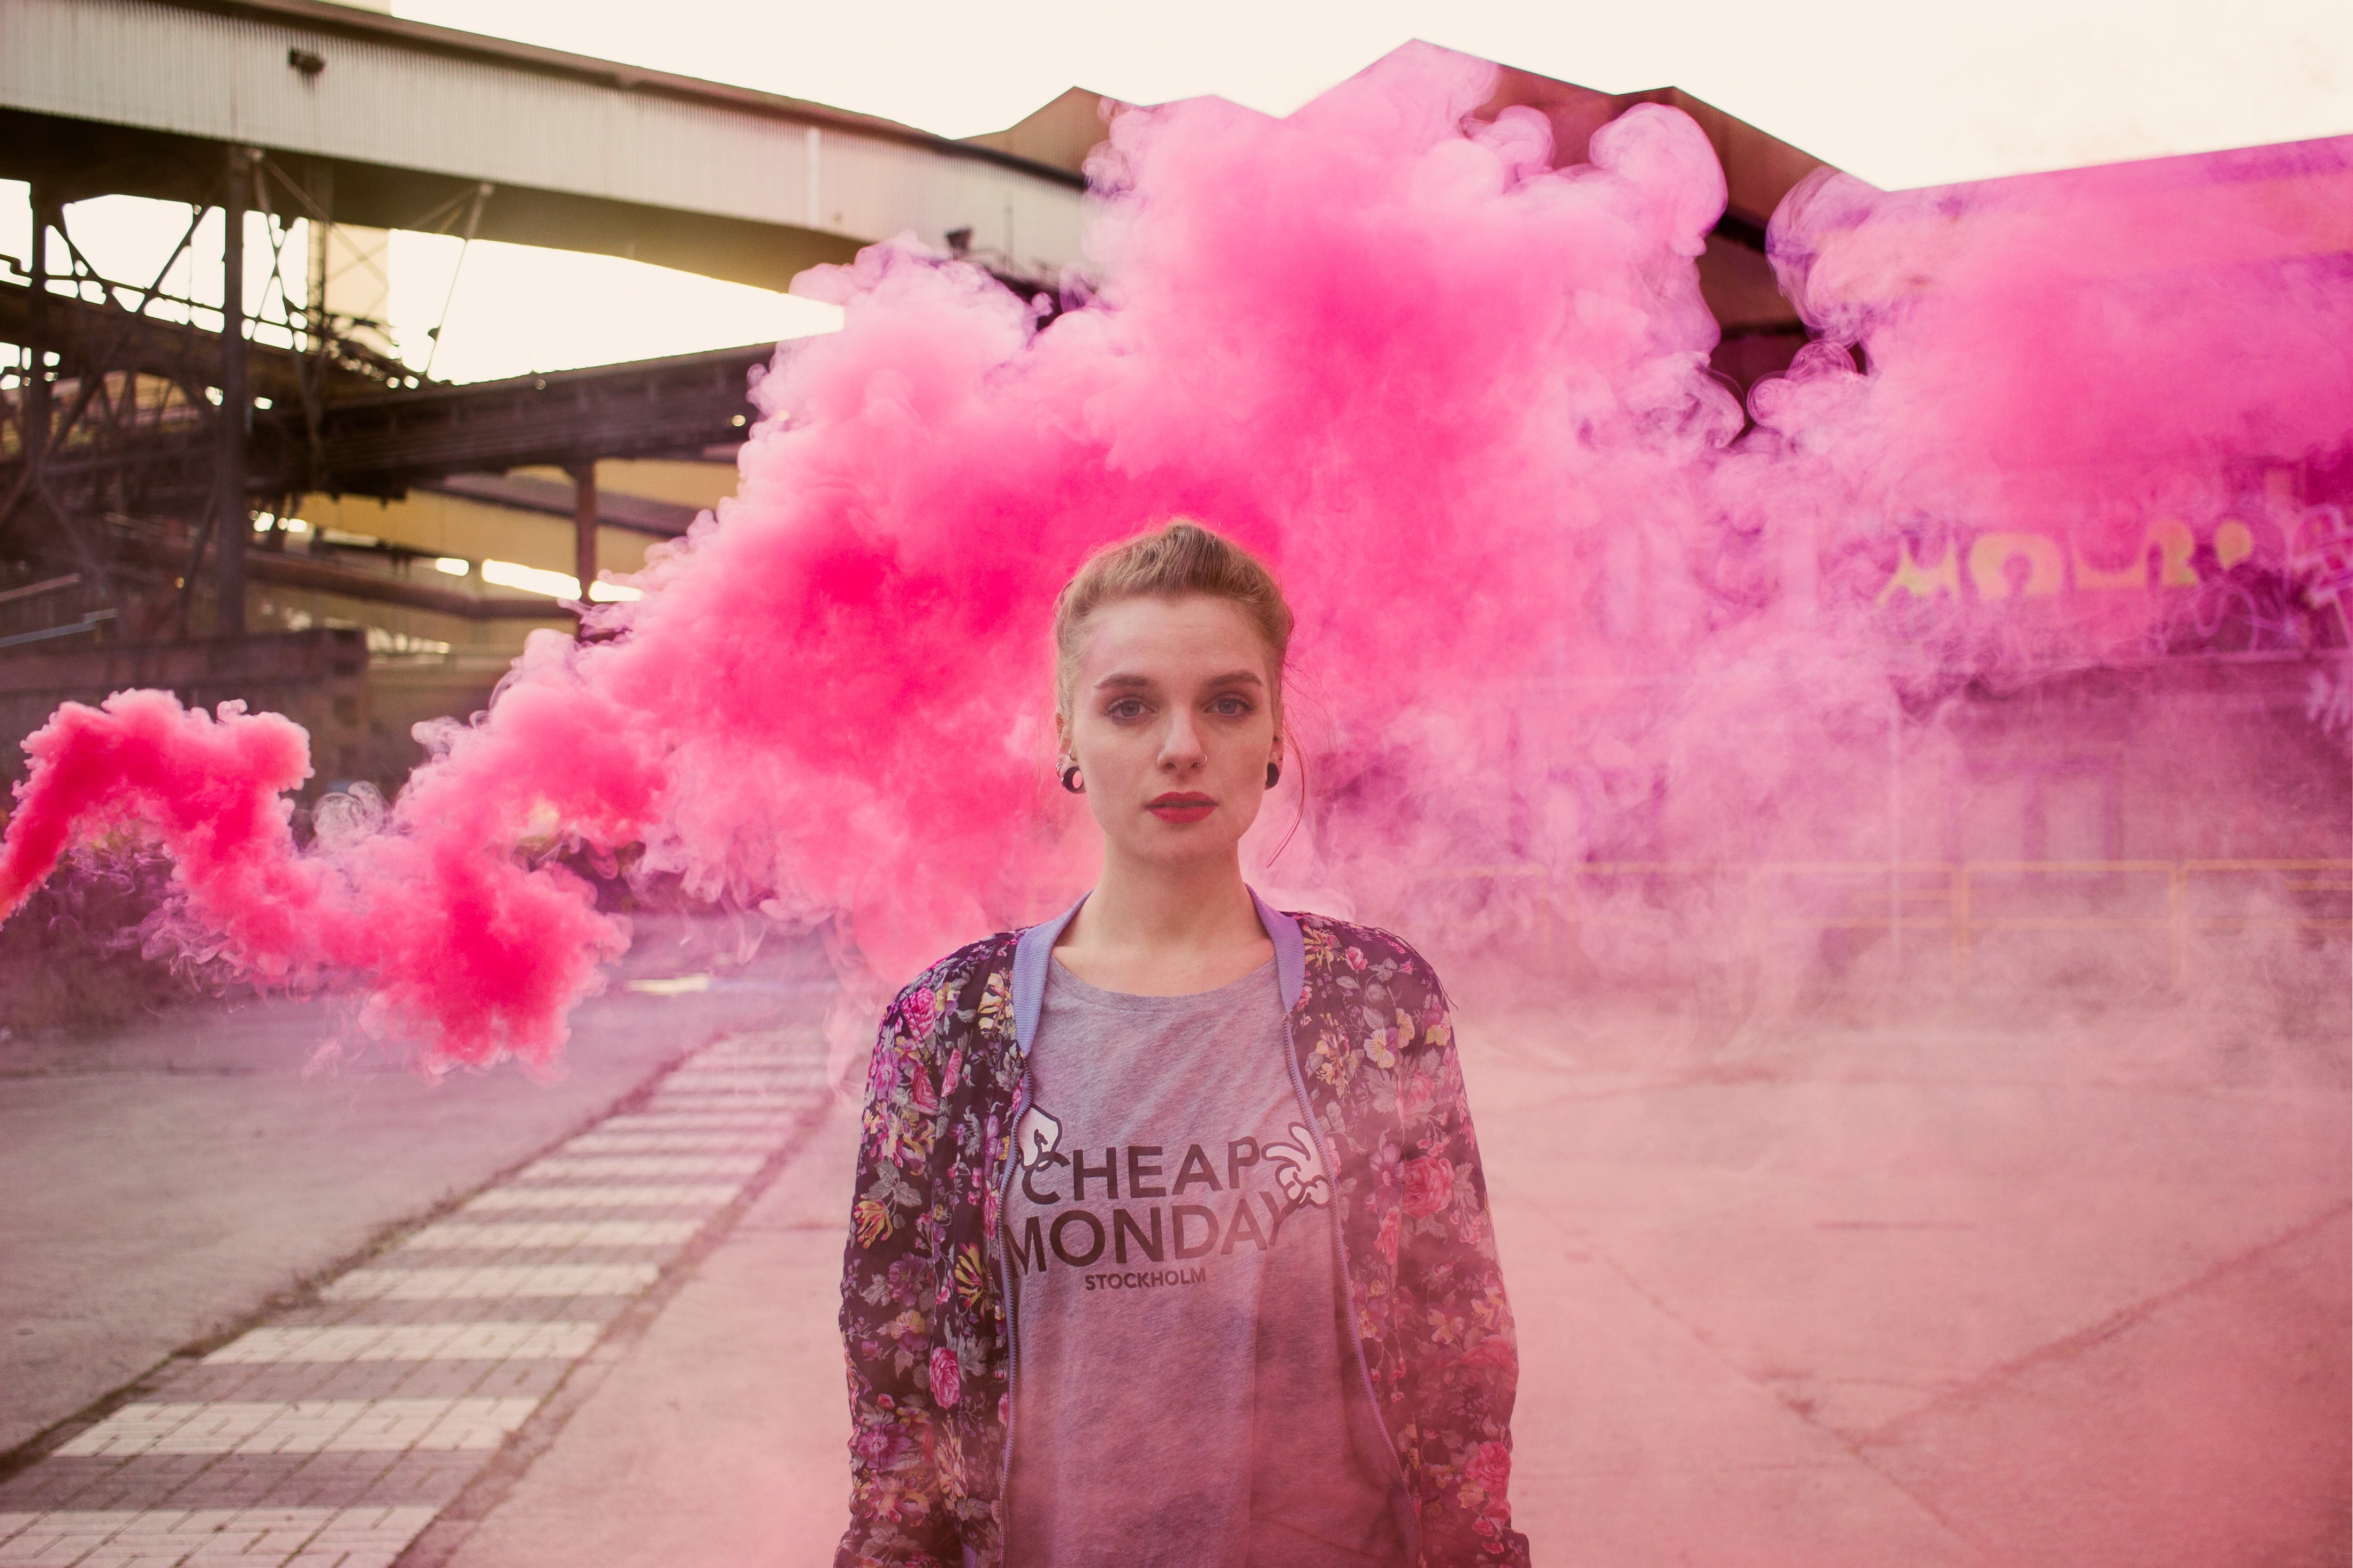 Young woman looks pensive in front of a cloud of pink smoke